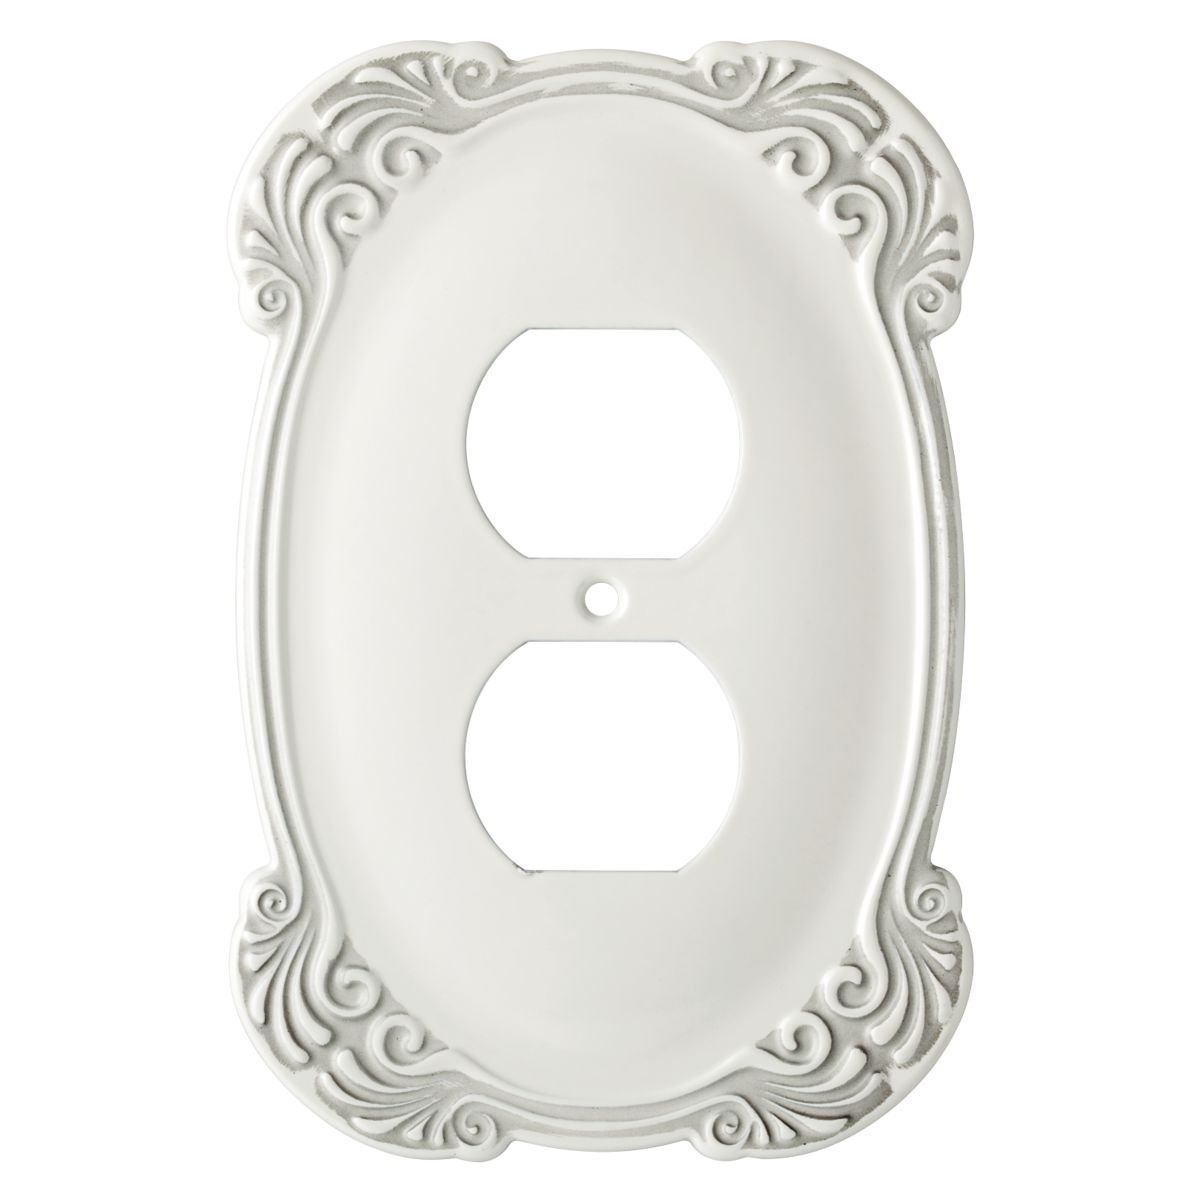 Franklin Brass 144394 Arboresque Single Duplex Wall Plate / Switch Plate / Cover